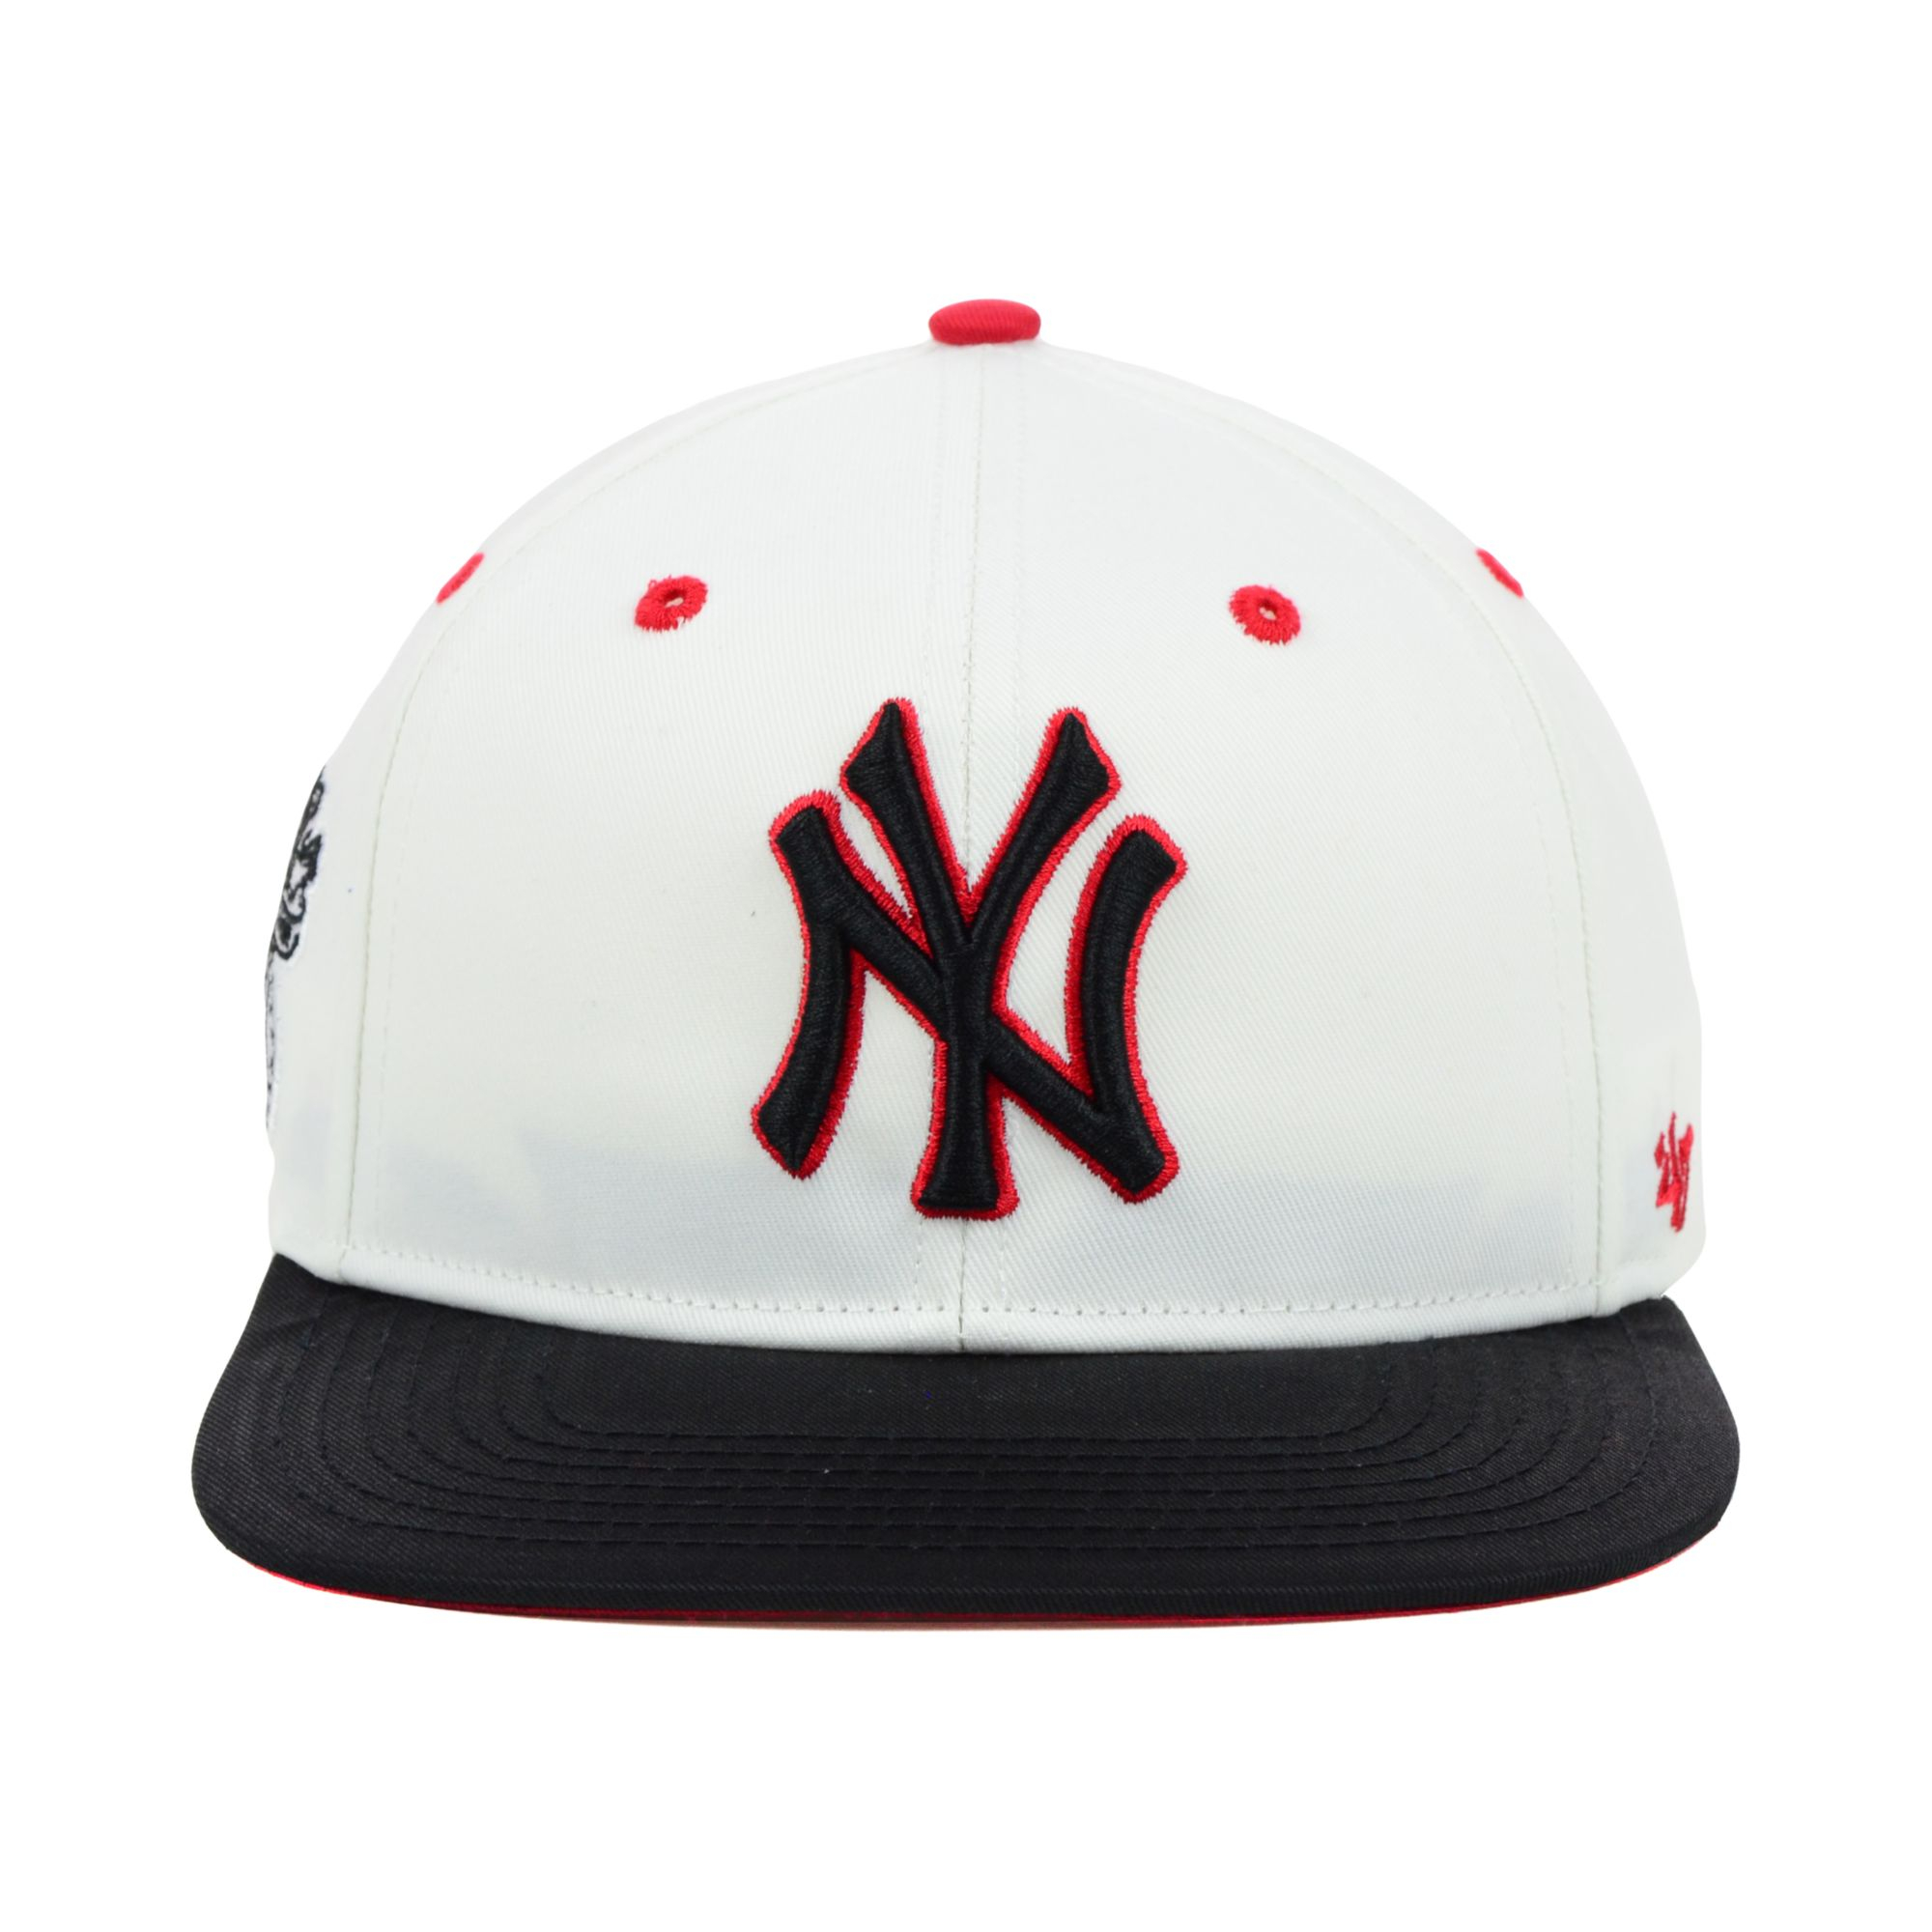 6a67a8f7e53 Lyst - 47 Brand New York Yankees Mlb Red Under Snapback Cap in Black ...